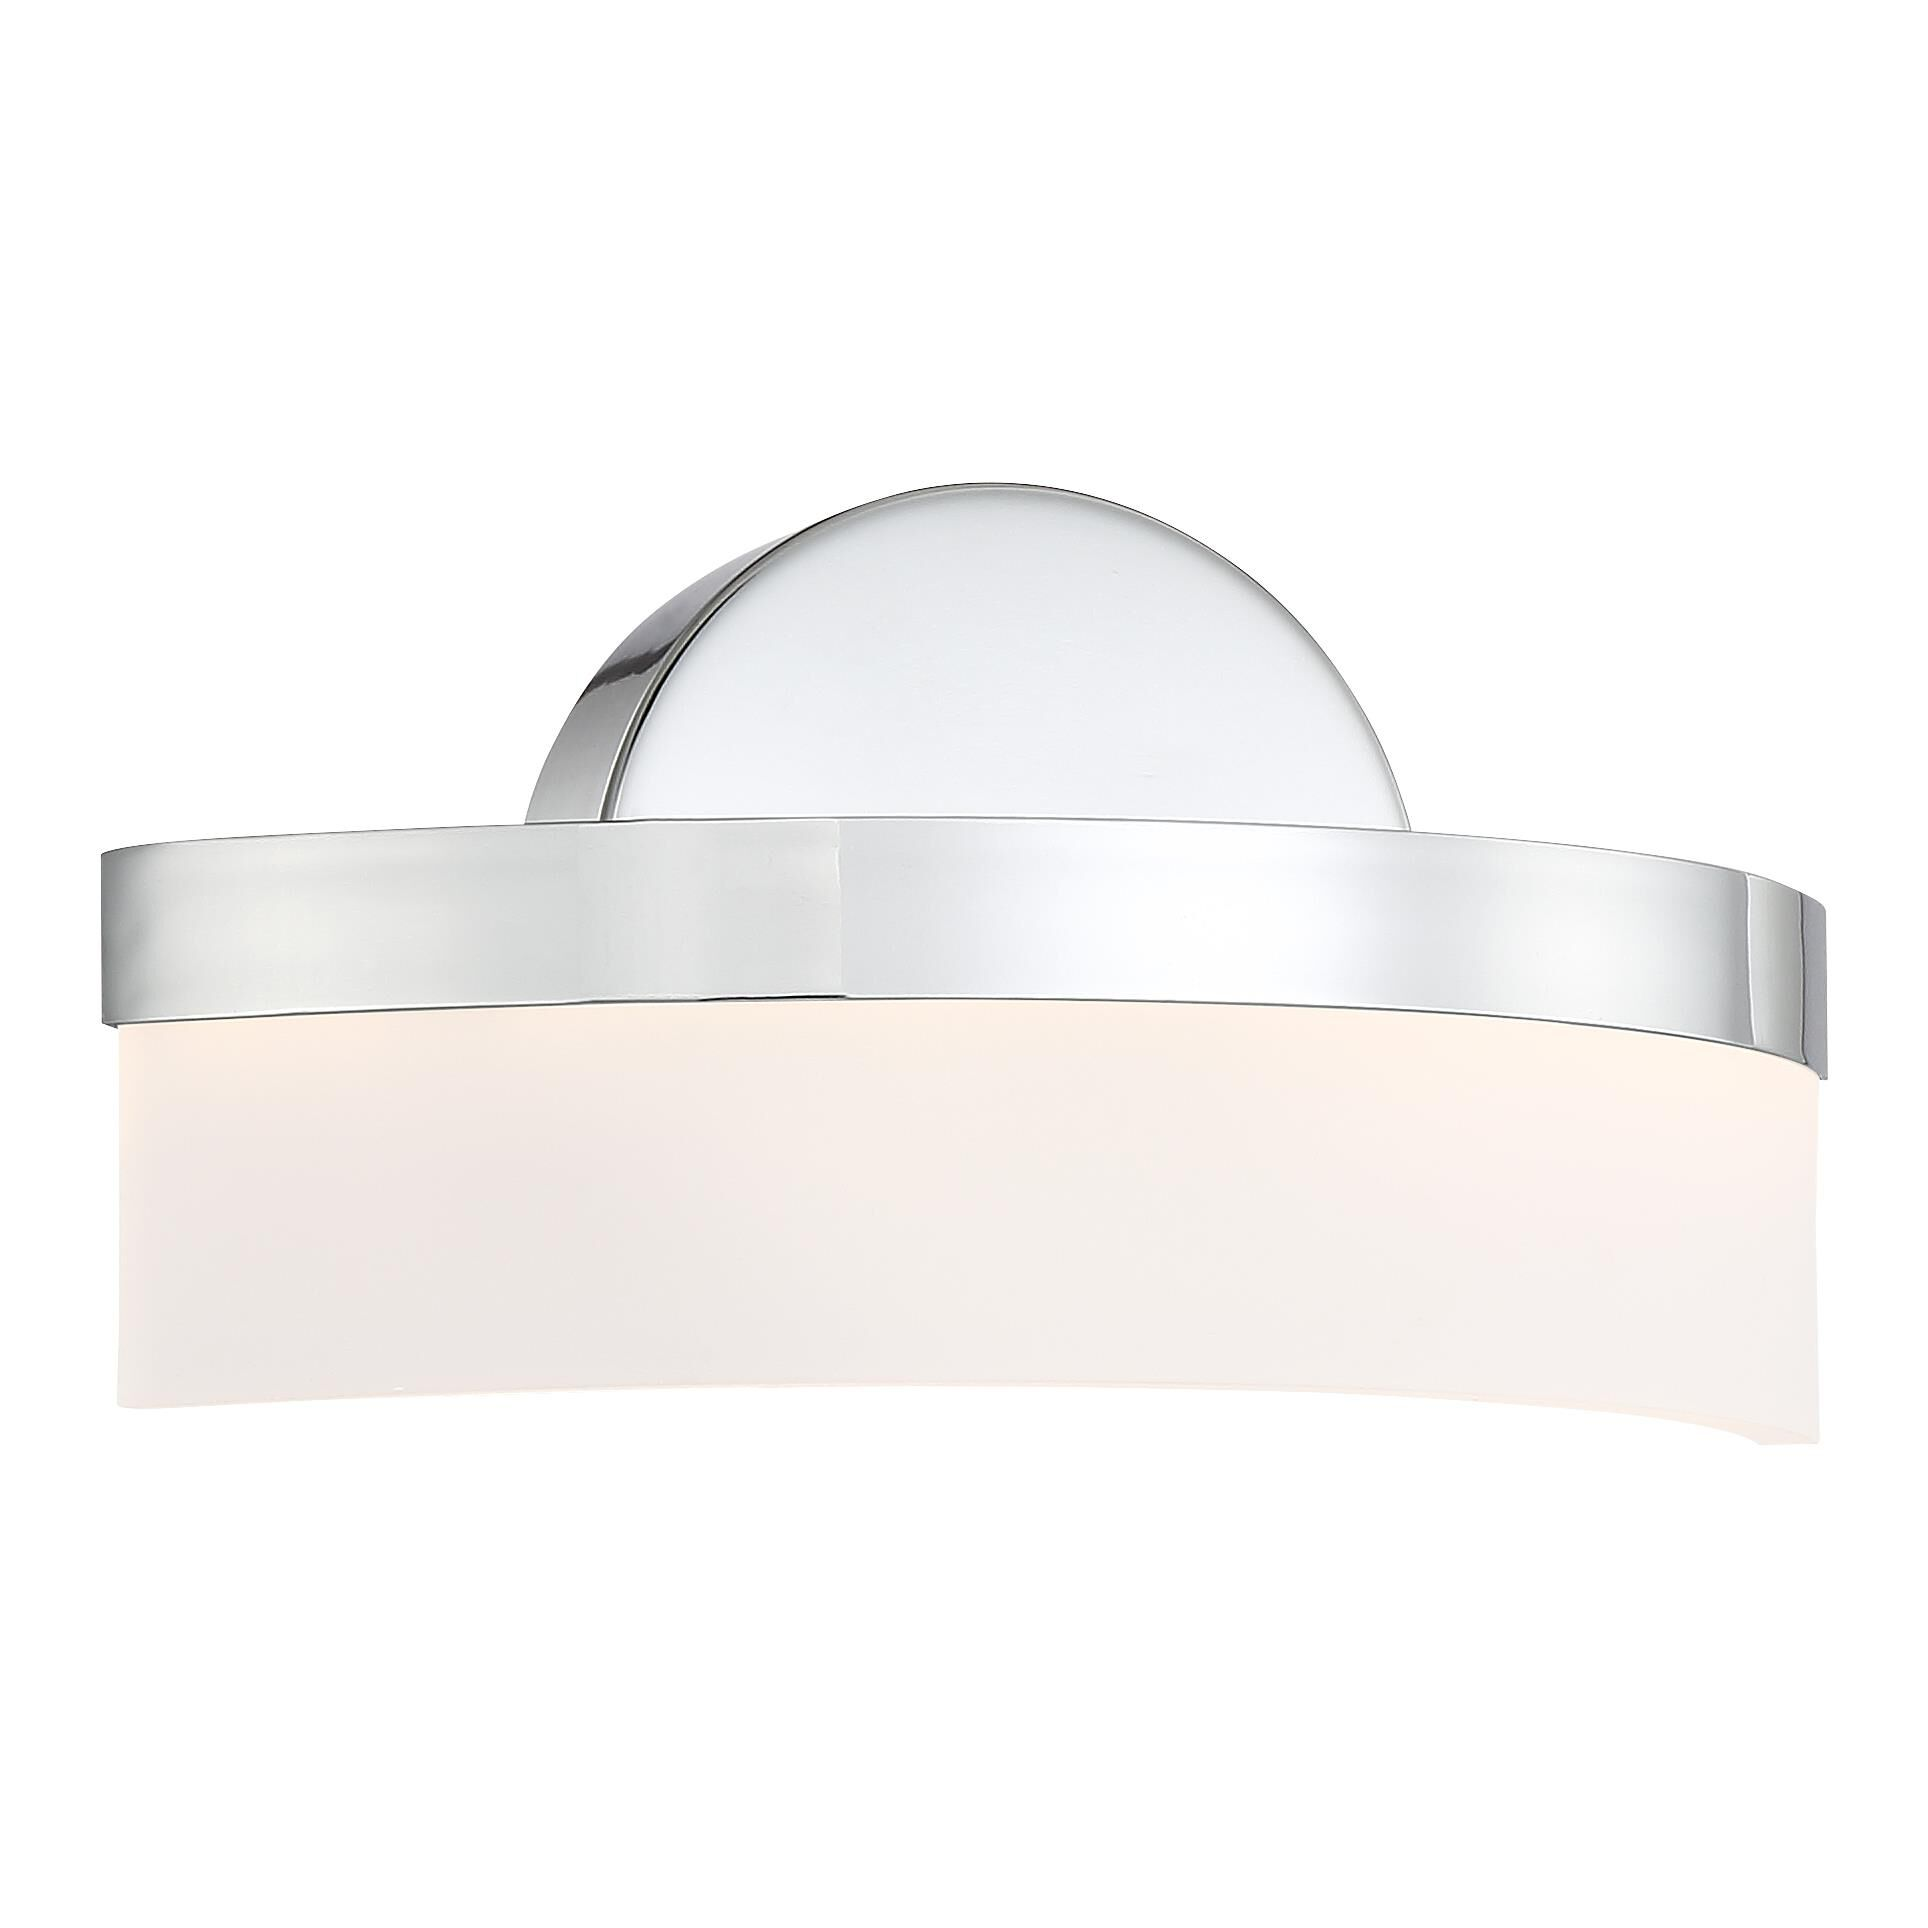 Access Lighting Bow 8 Inch LED Wall Sconce Bow 62246LEDD CHACR Modern Contemporary